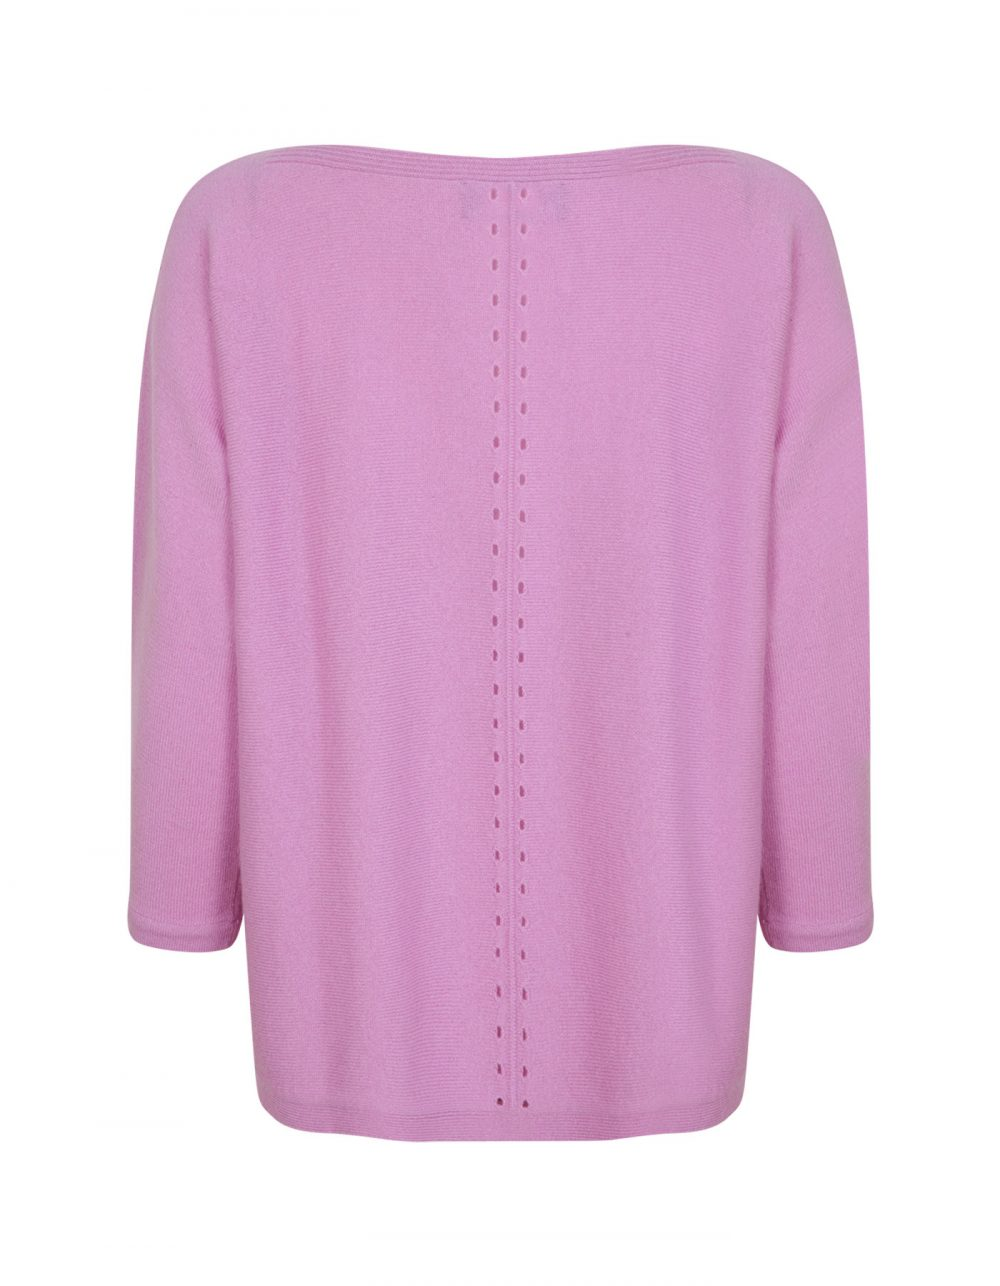 malin darlin lips boat neck cashmere jumpers for summer.